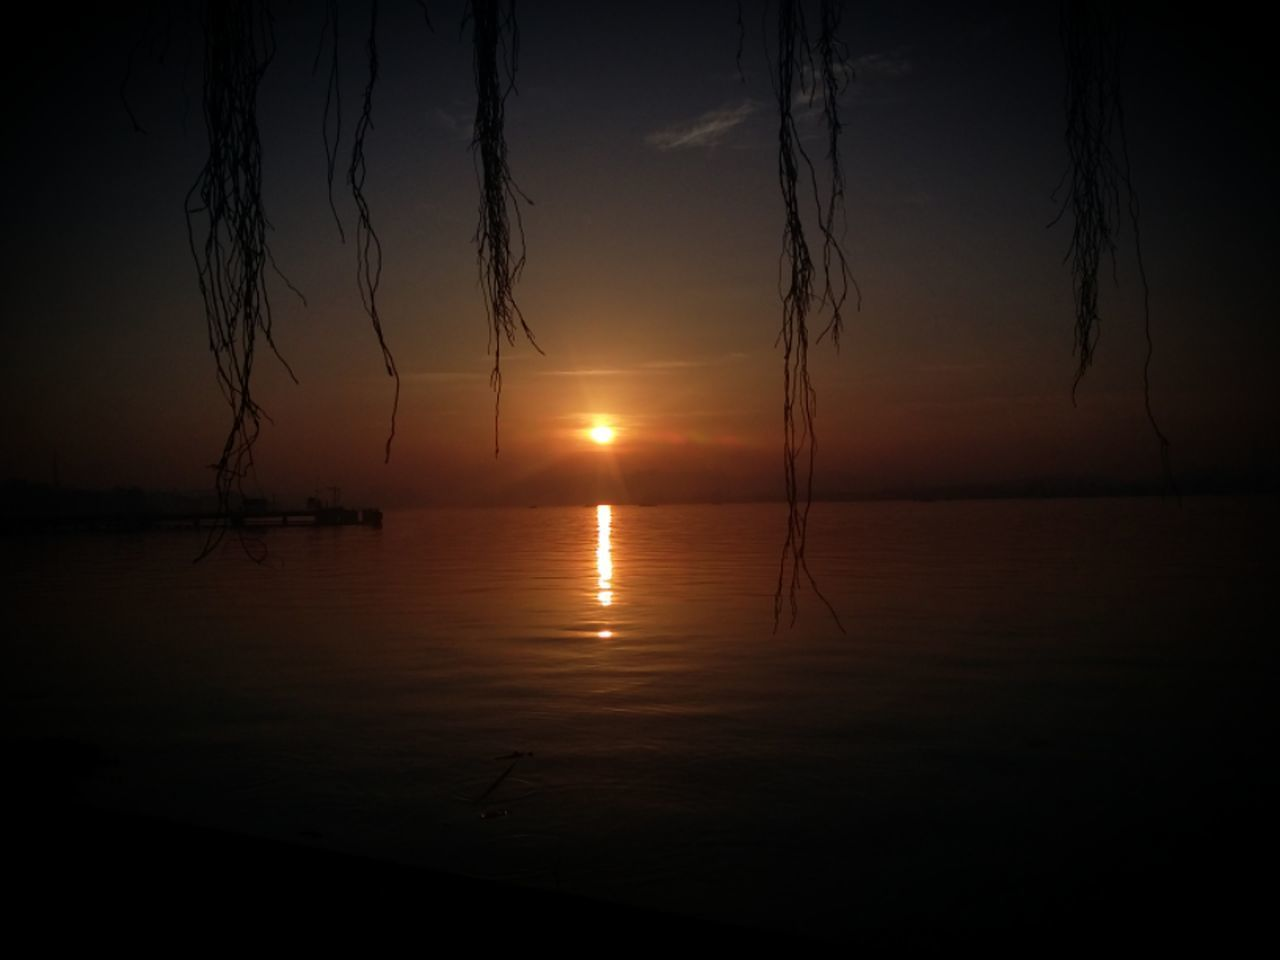 sunset, reflection, tranquility, nature, tranquil scene, scenics, water, beauty in nature, sea, sun, no people, sky, silhouette, outdoors, waterfront